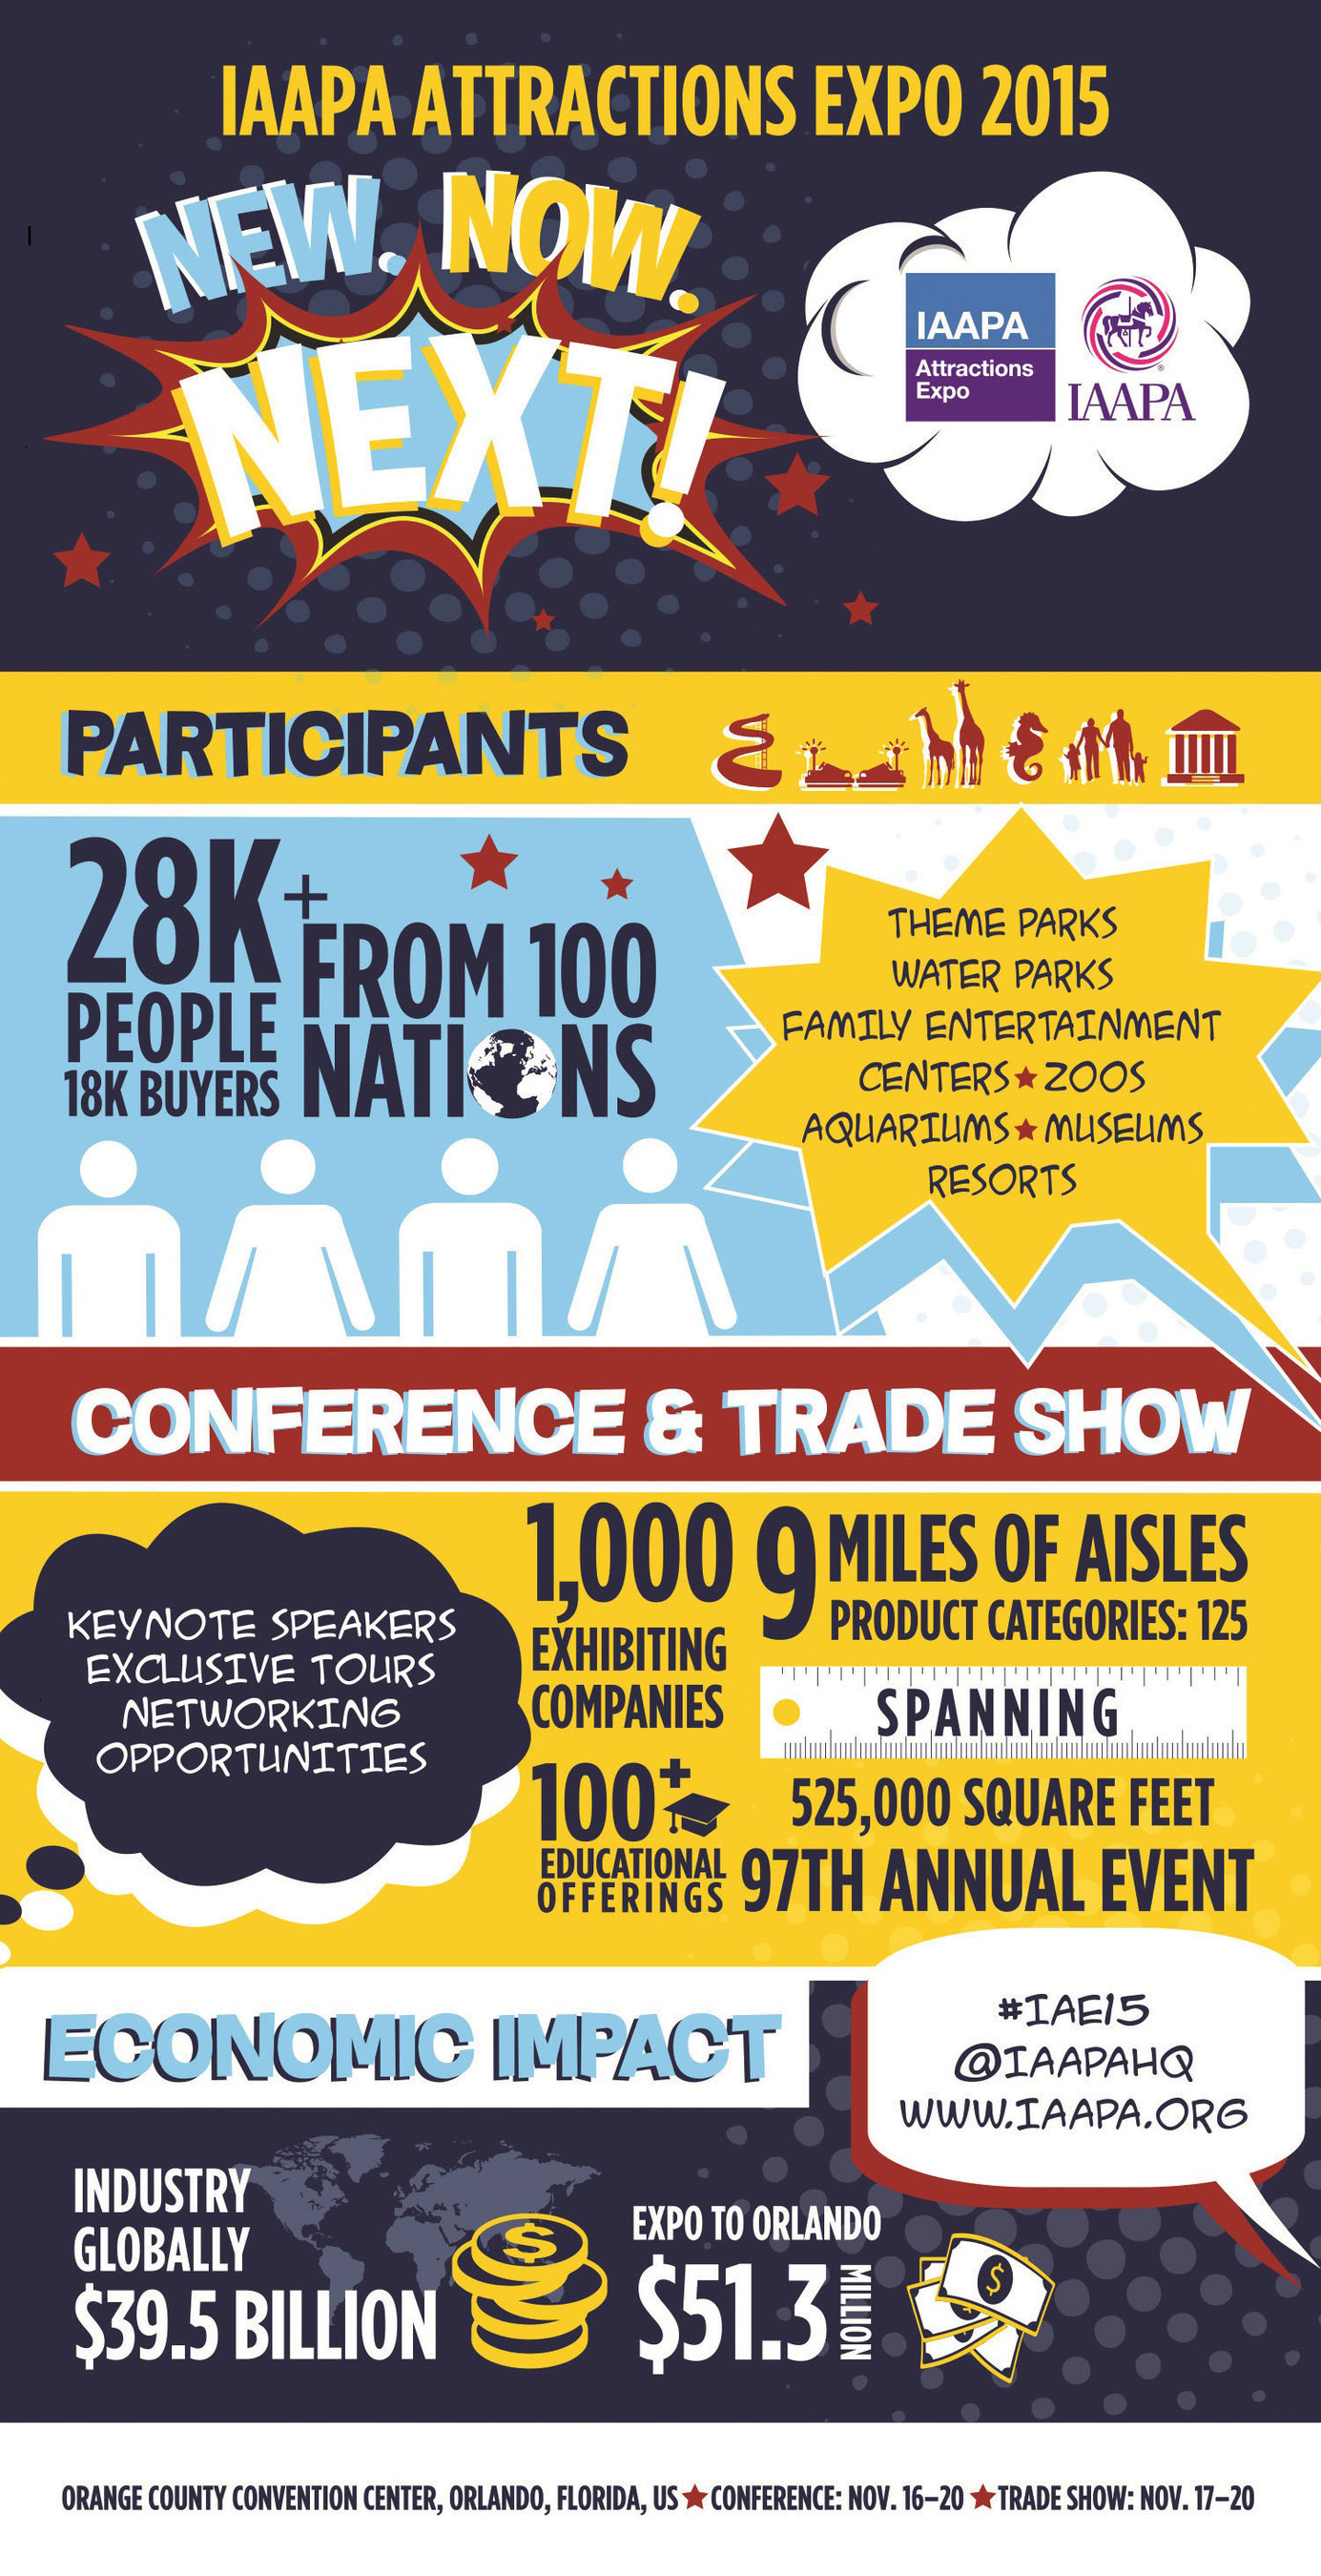 IAAPA Attractions Expo 2015 is open through Nov. 20 in Orlando; Check out the stats on the largest annual gathering of the $39.5 billion global theme park and attractions industry. Image via IAAPA.org at http://bit.ly/IAAPAExpo2015Infographic.